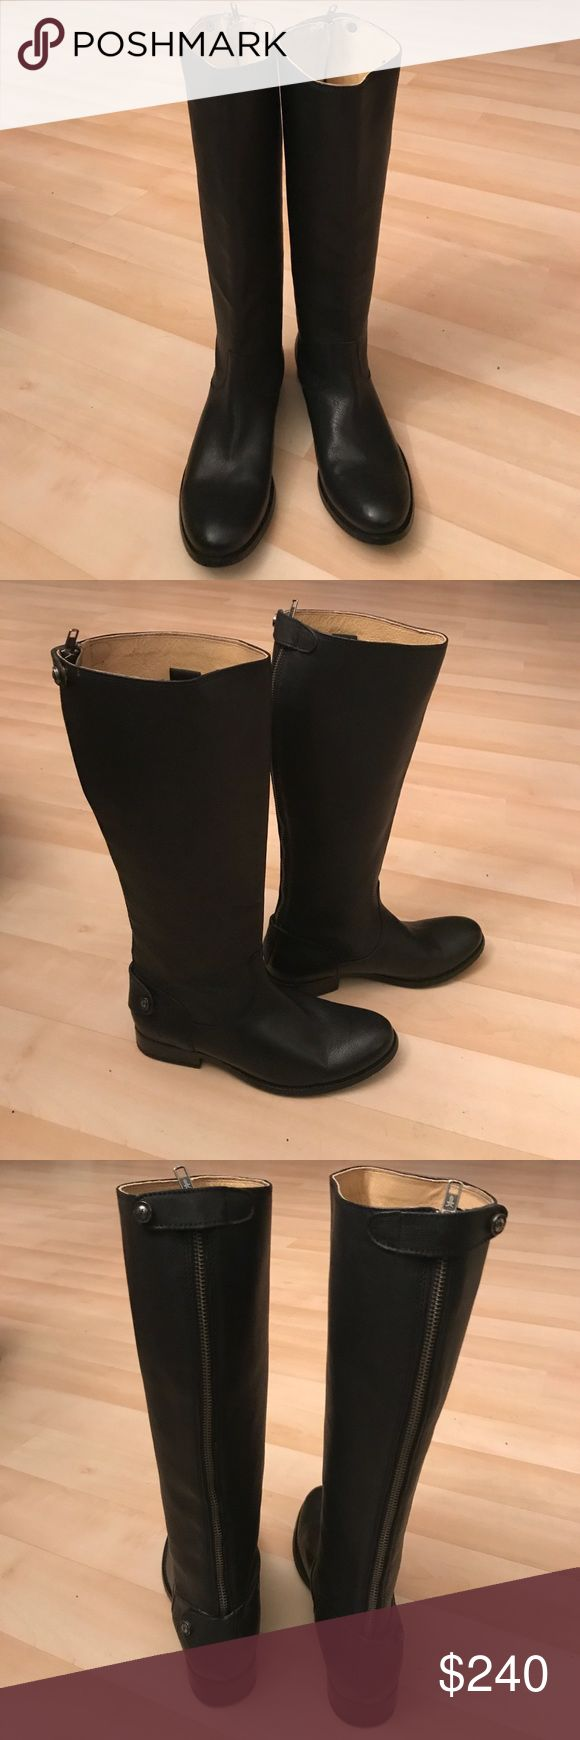 New Frye black pebbled leather riding boots New Frye black pebbled leather riding boots. Size 8,5B. Zipper on back Frye Shoes Heeled Boots